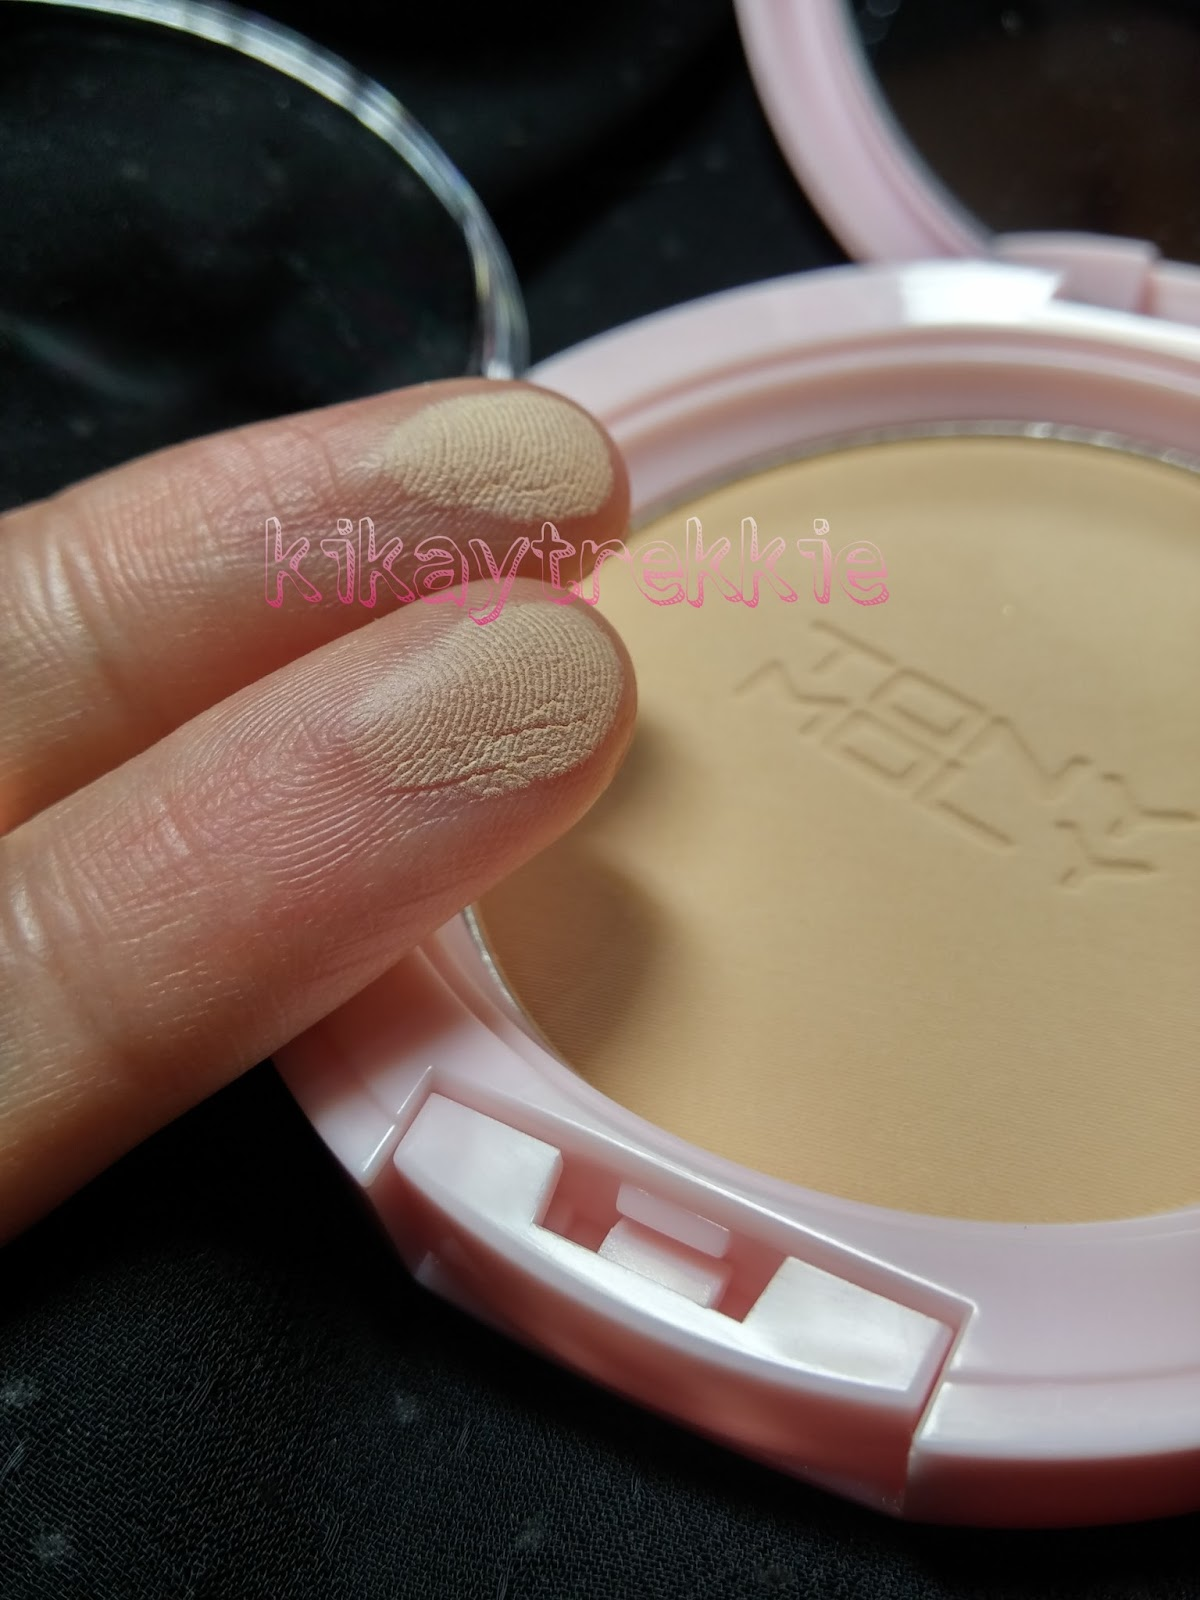 Kikay Trekkie Review Tony Moly Baby Aura Compact Pressed Powder 02 Berrianne Cream Product Ingredients Are Below And In English On The Side Of Box